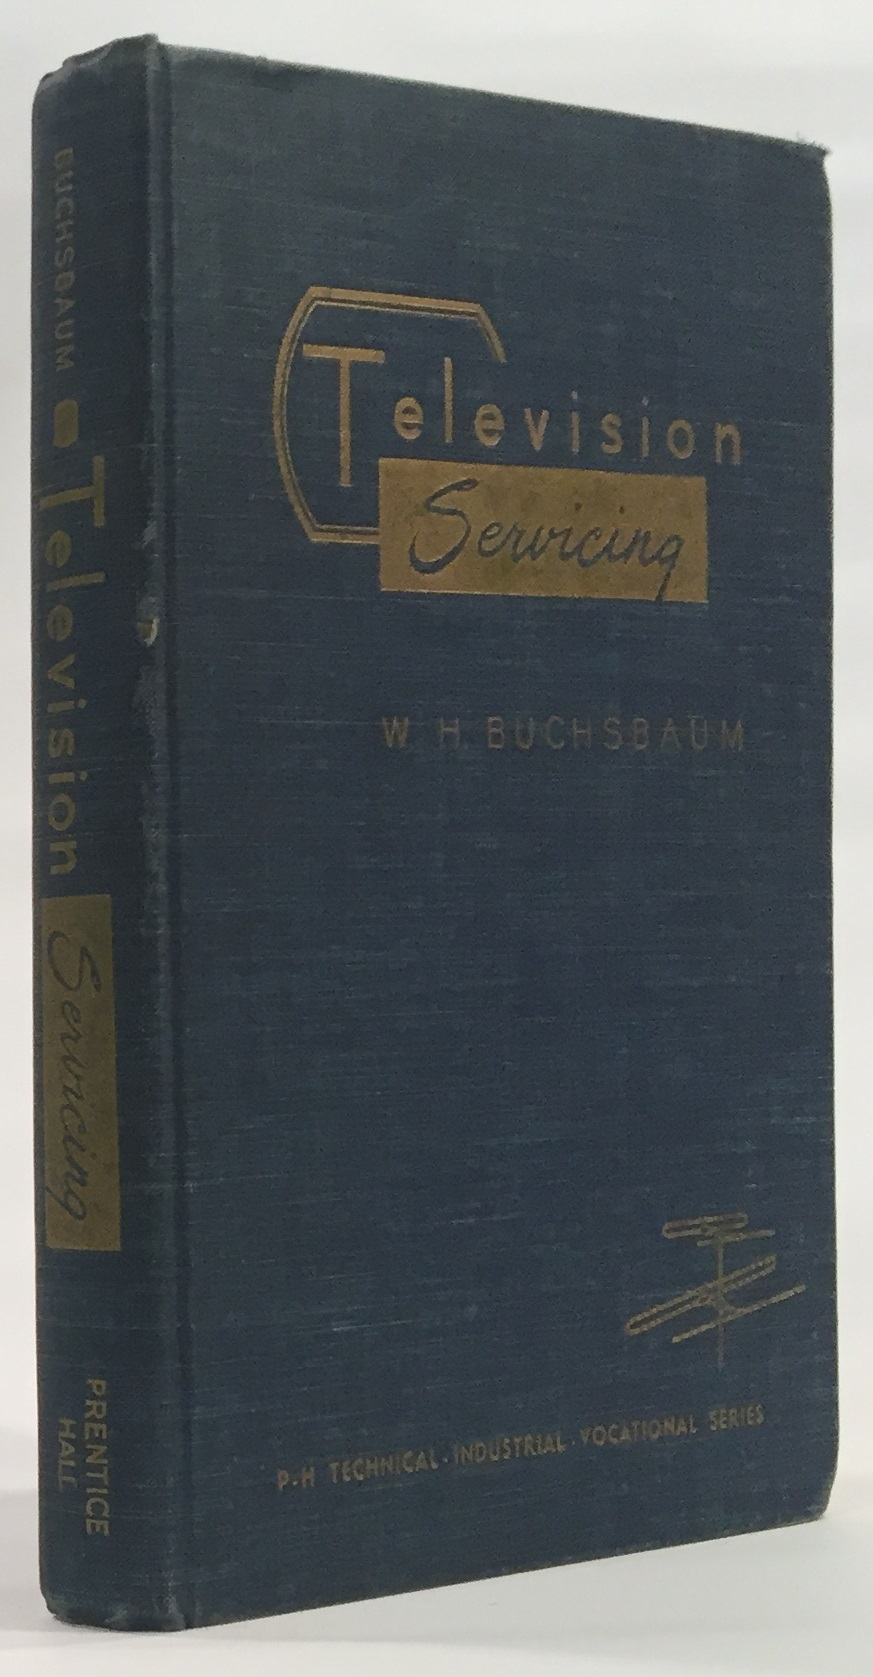 Image for Television Servicing Theory and Practive